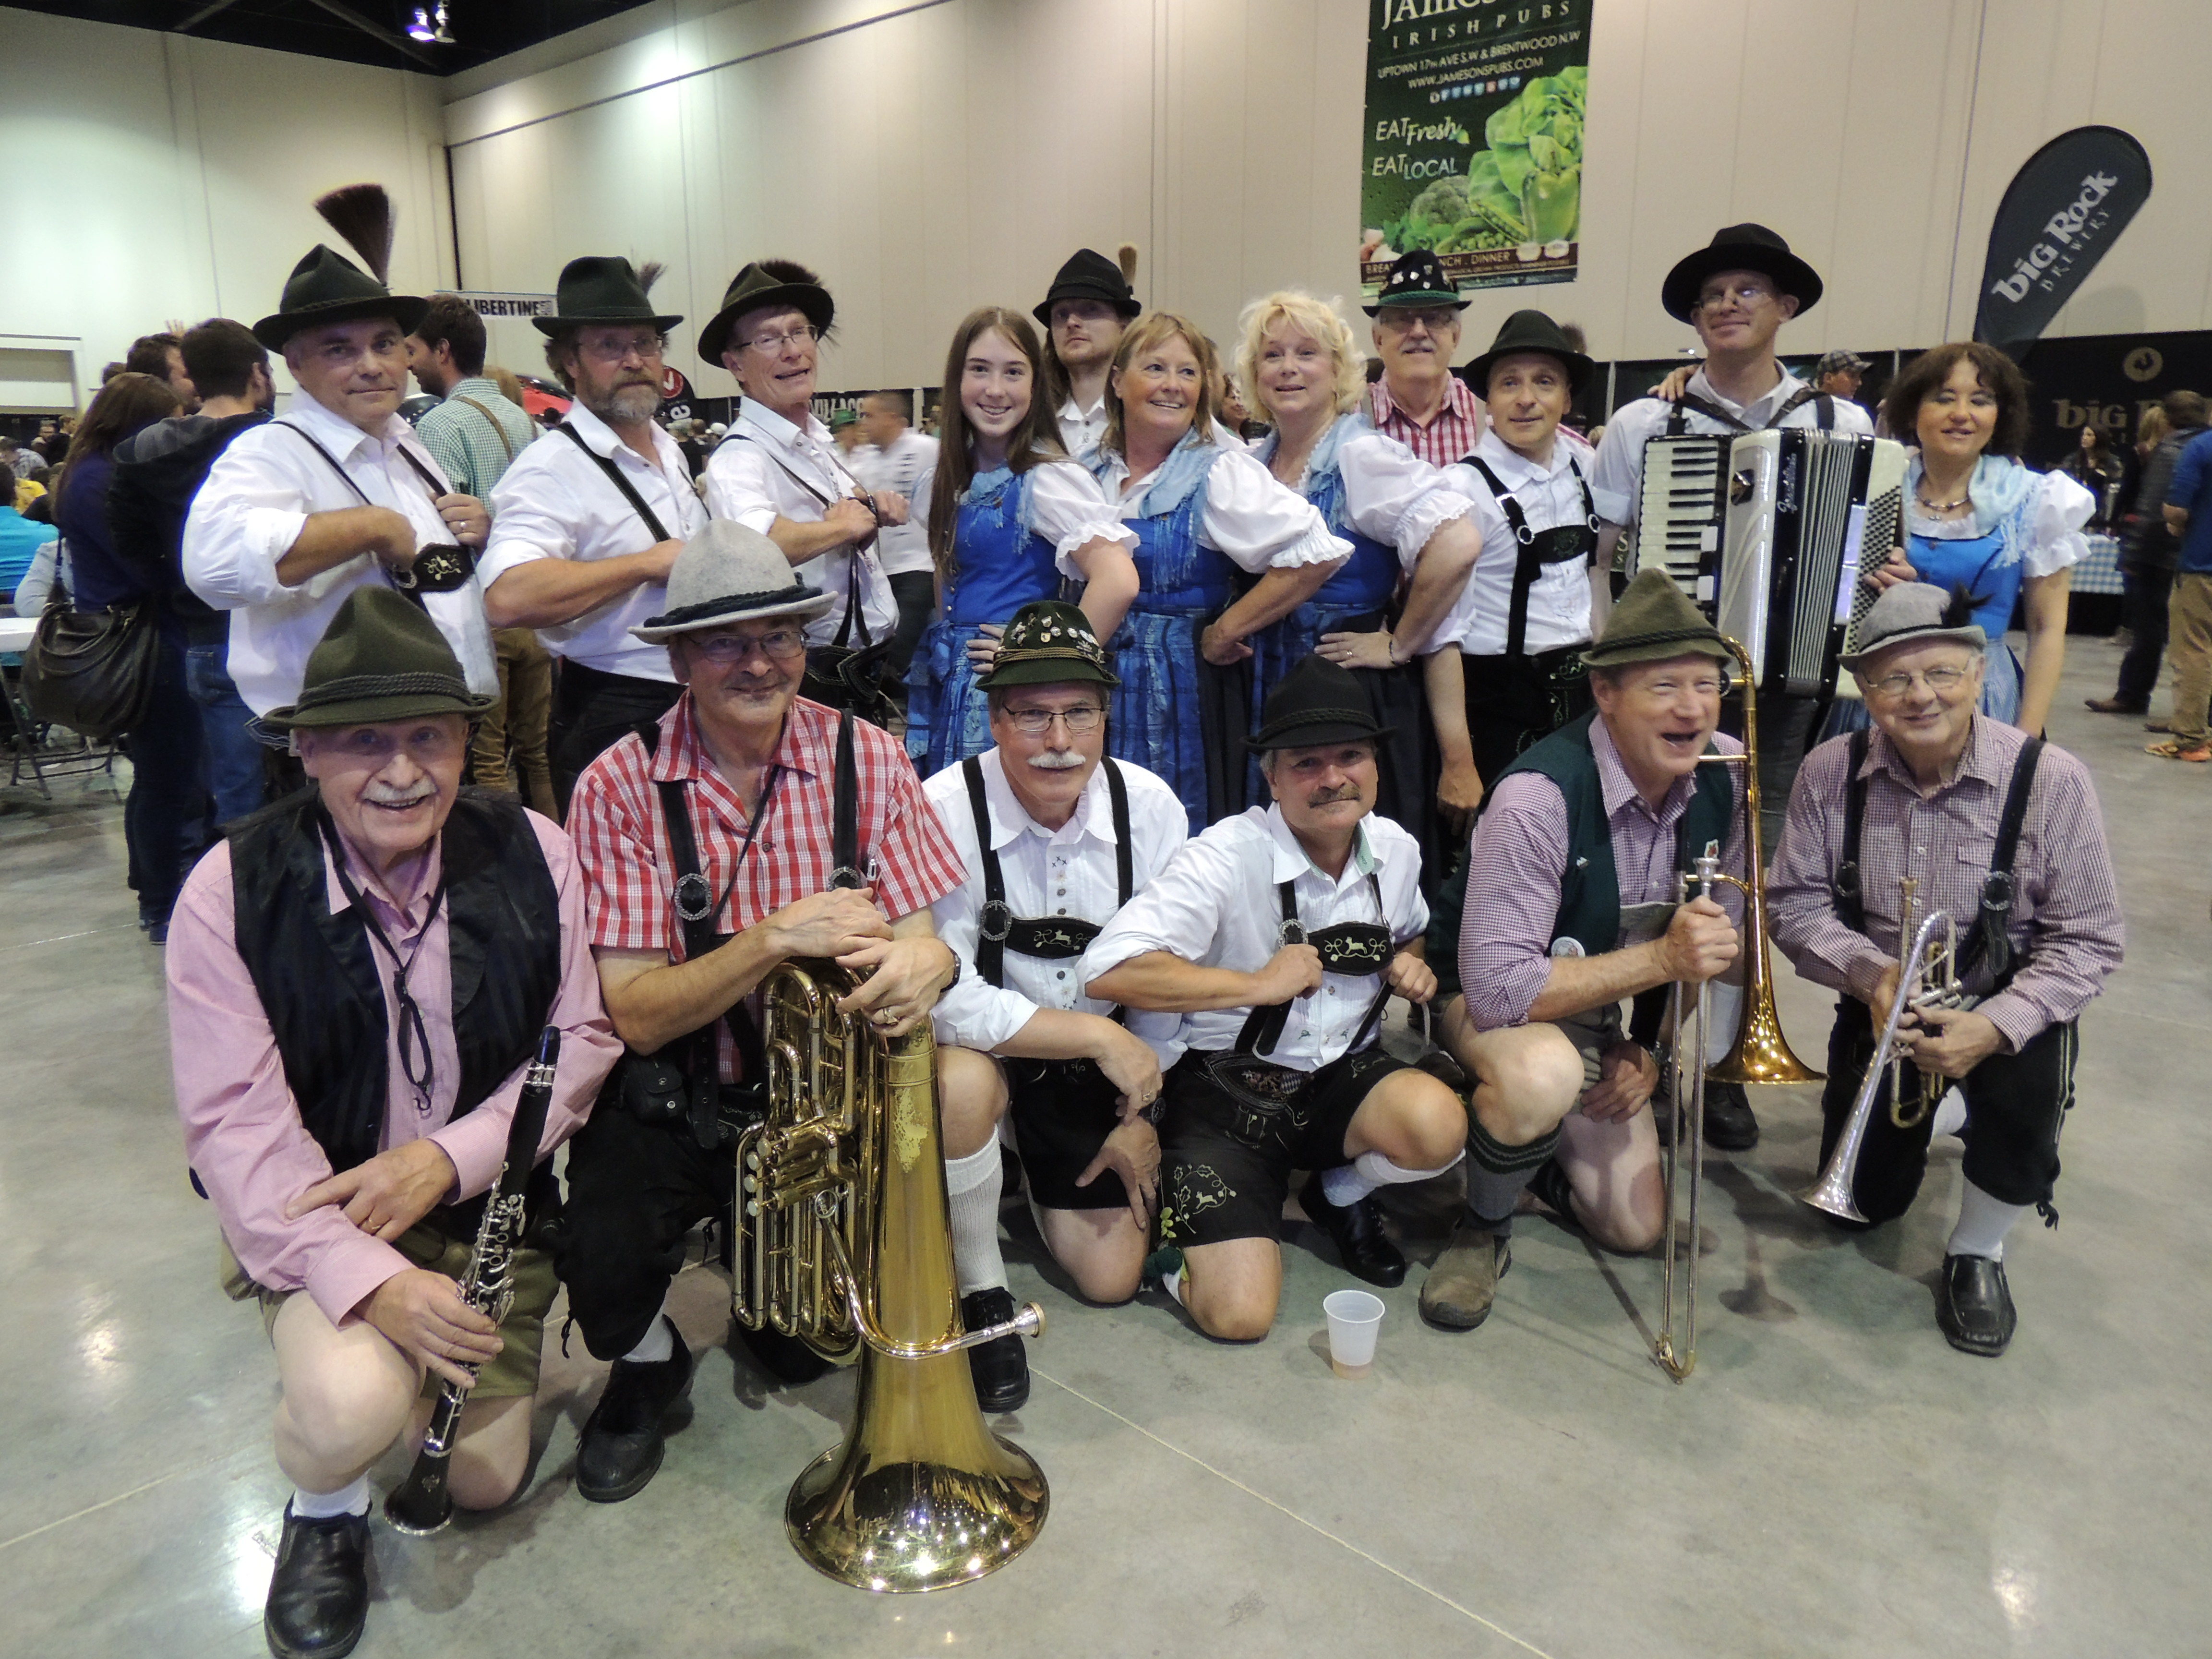 2015 Calgary Oktoberfest Press Release The Tradition